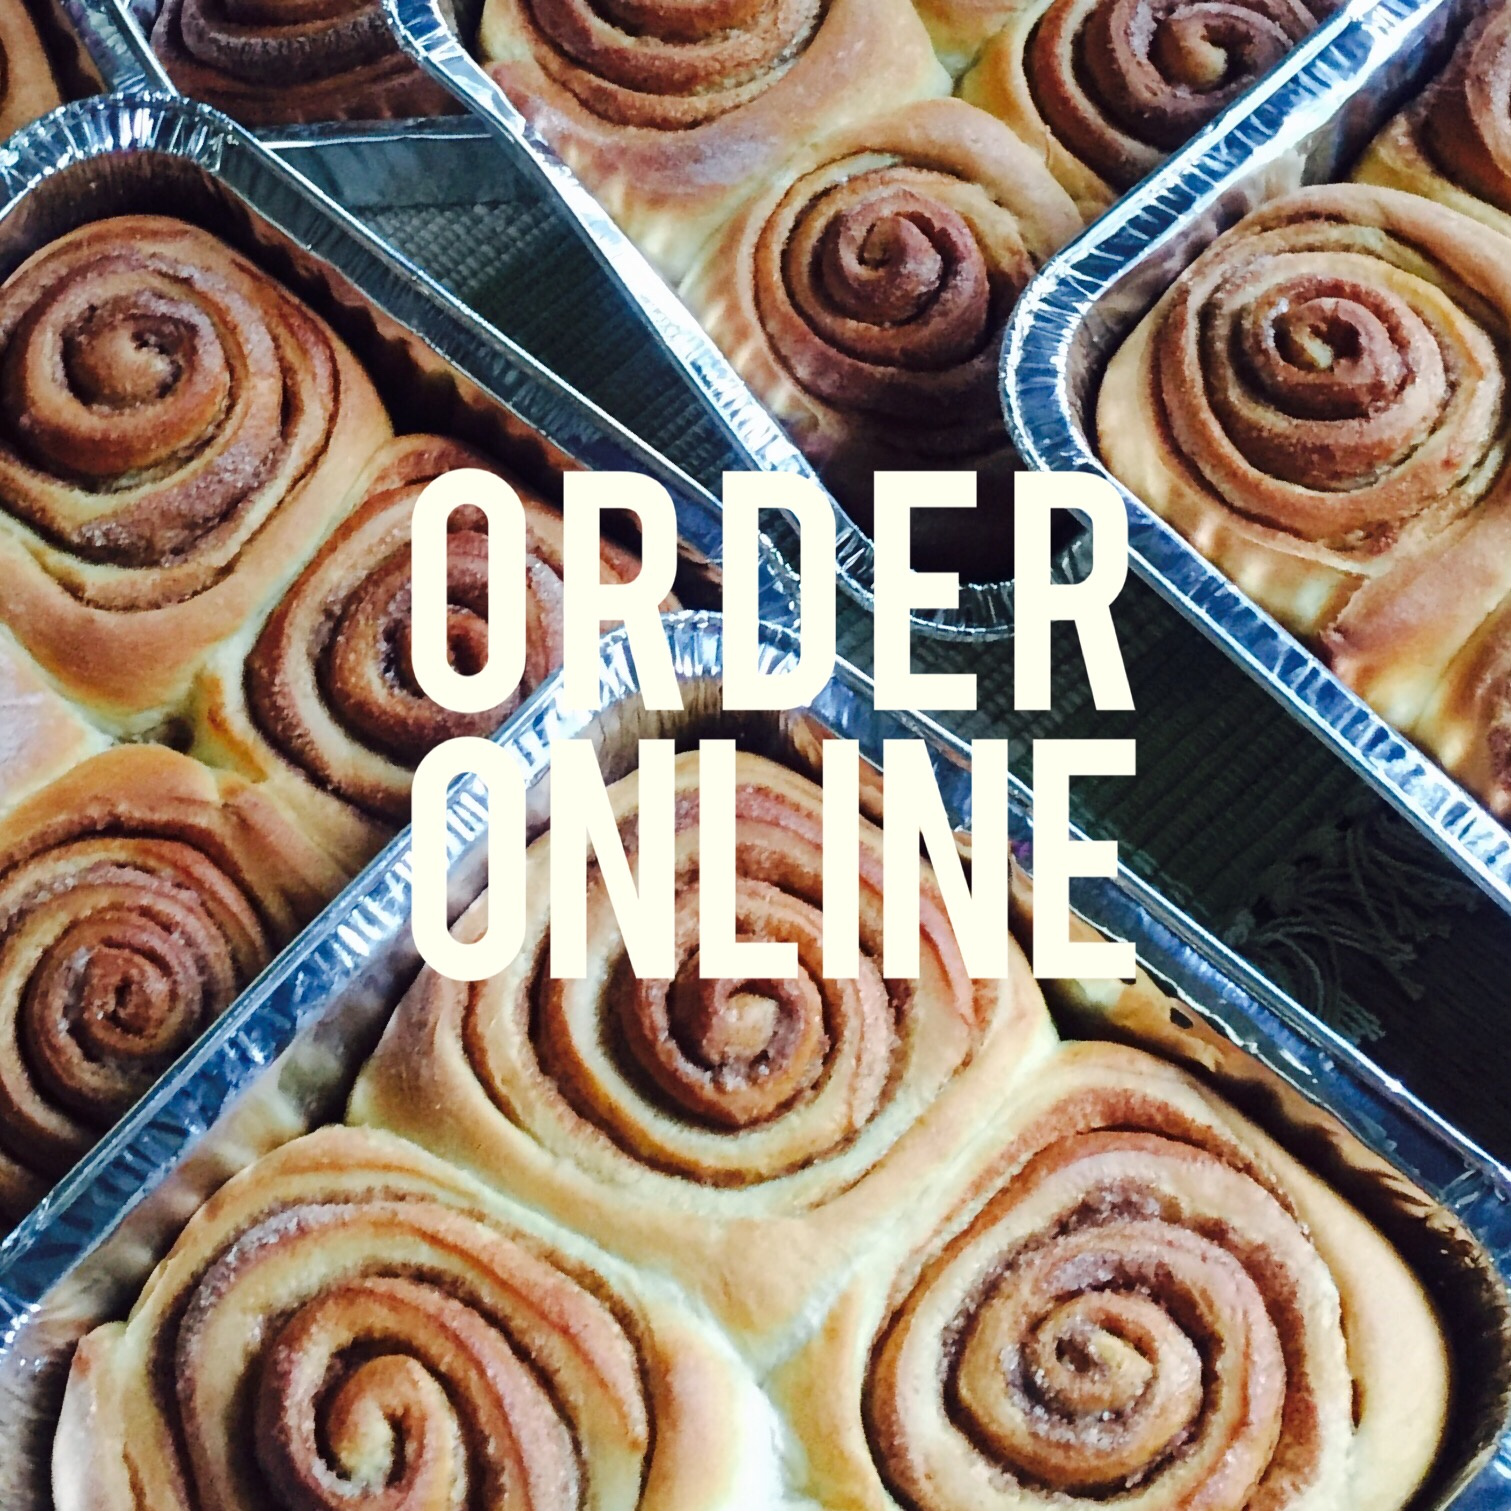 CLICK HERE TO PLACE AN ORDER